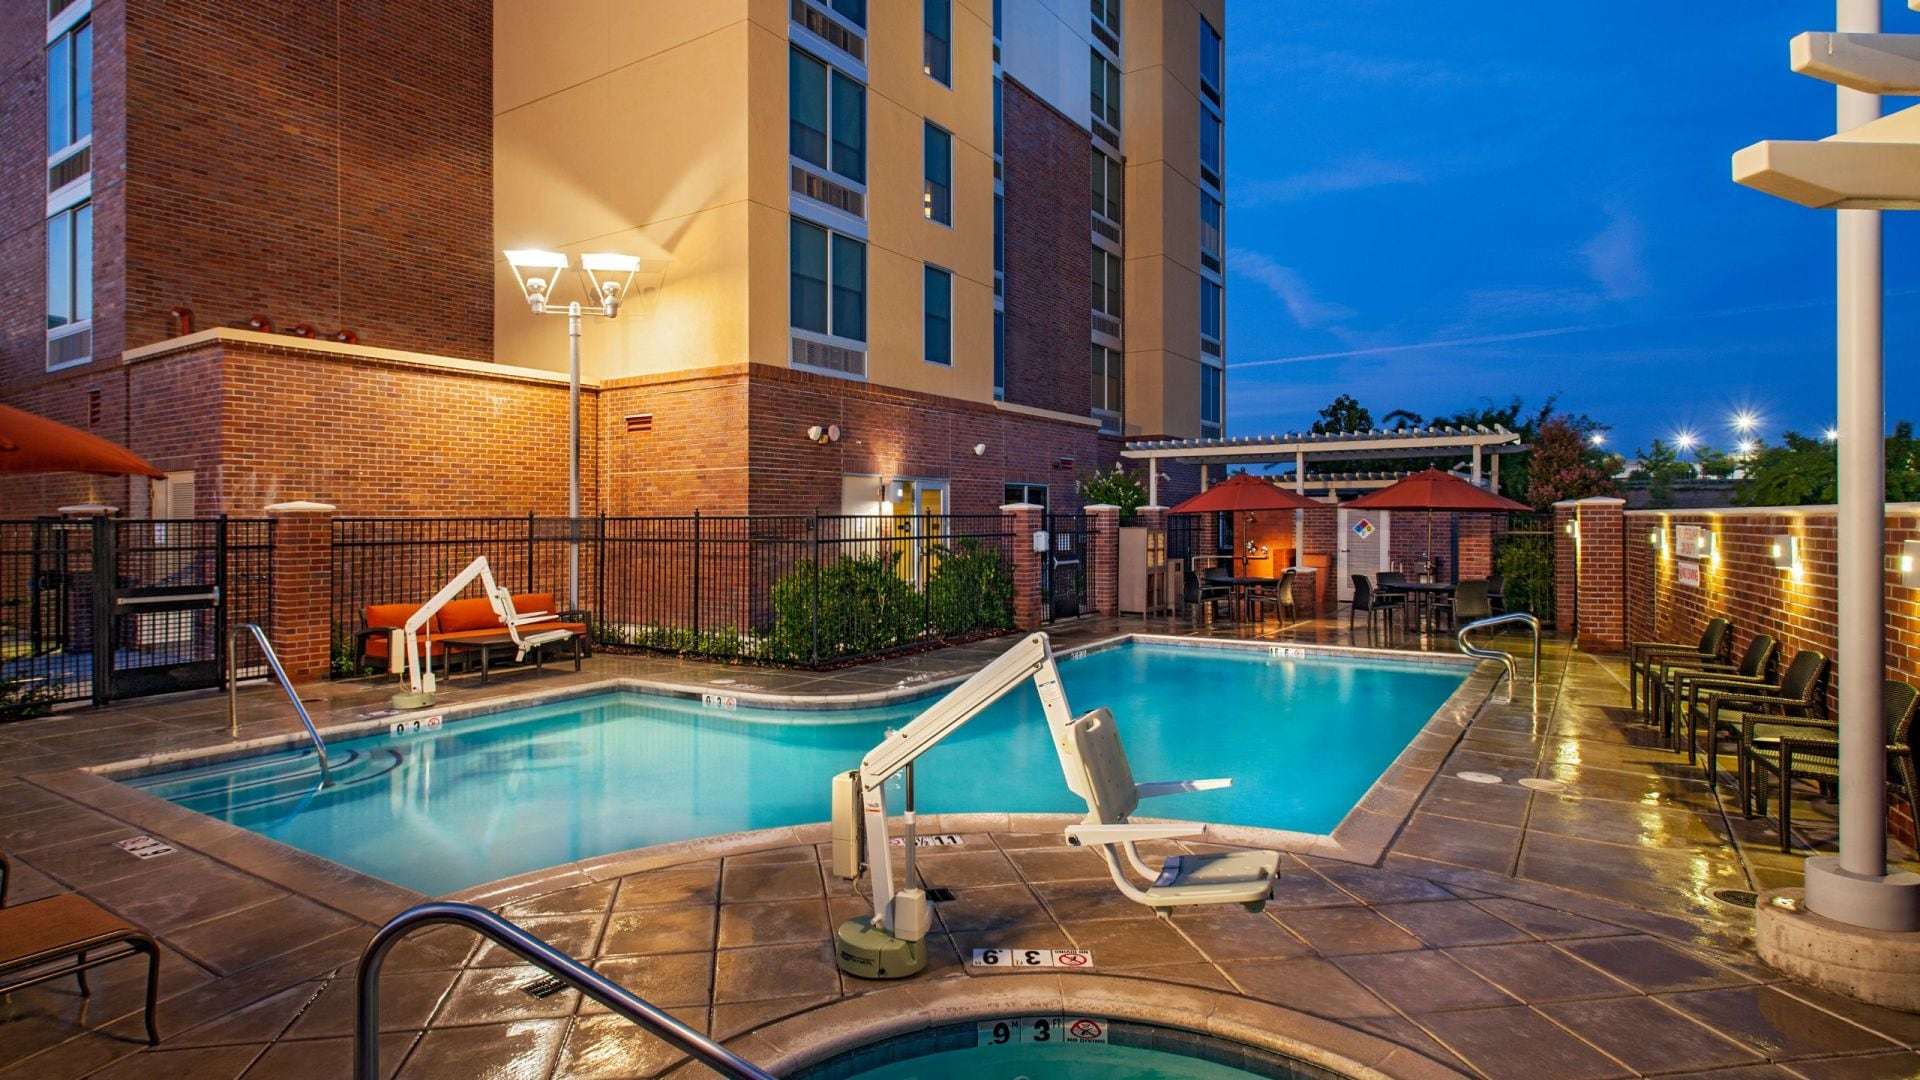 Excellent guest reviews and hotel photos hyatt place - Johnson swimming pool roseville ca ...